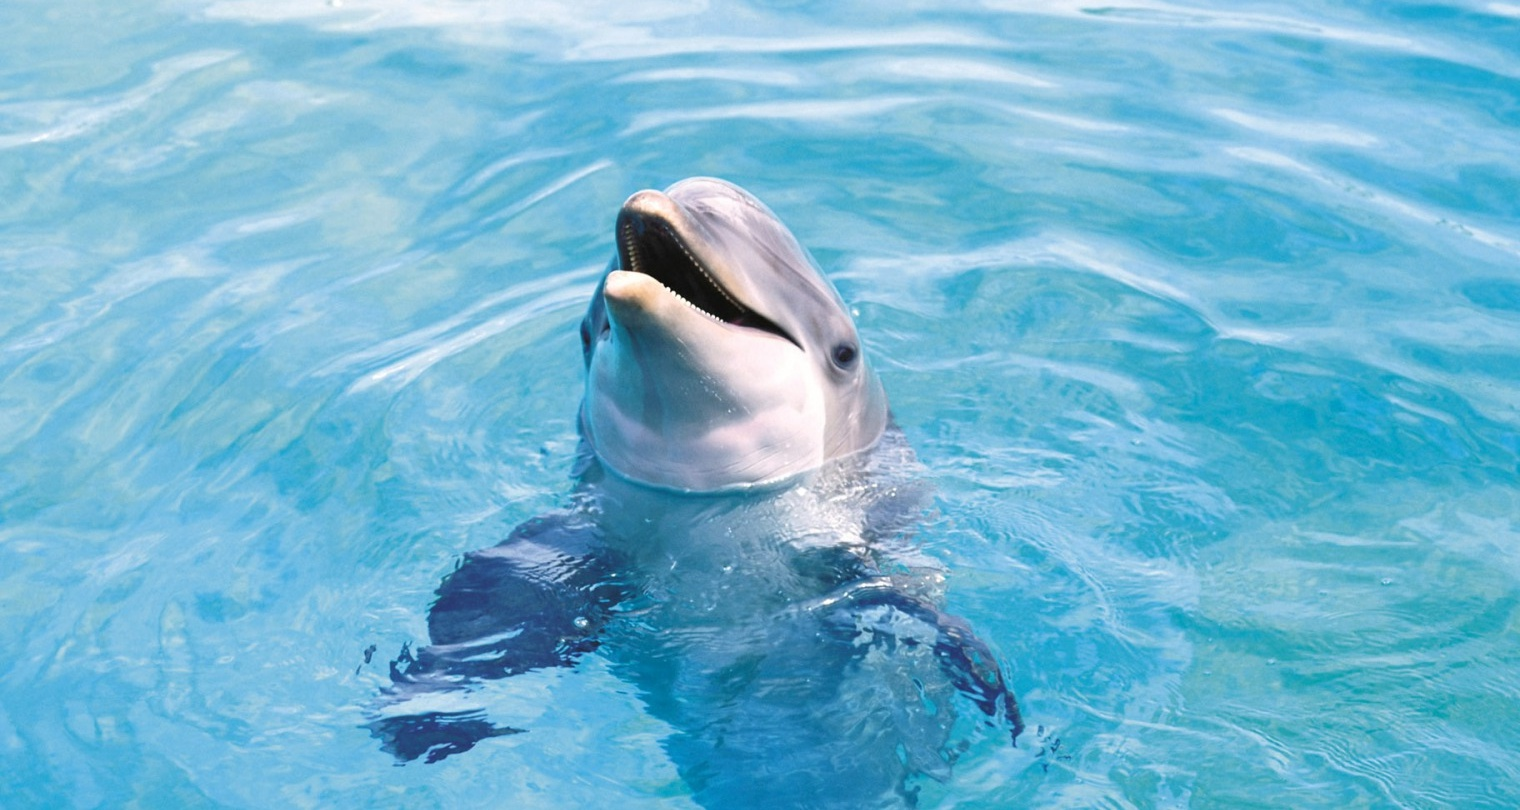 ... Dolphin Fish High Quality Wallpapers and Pictures. / Dolphin Fish HD